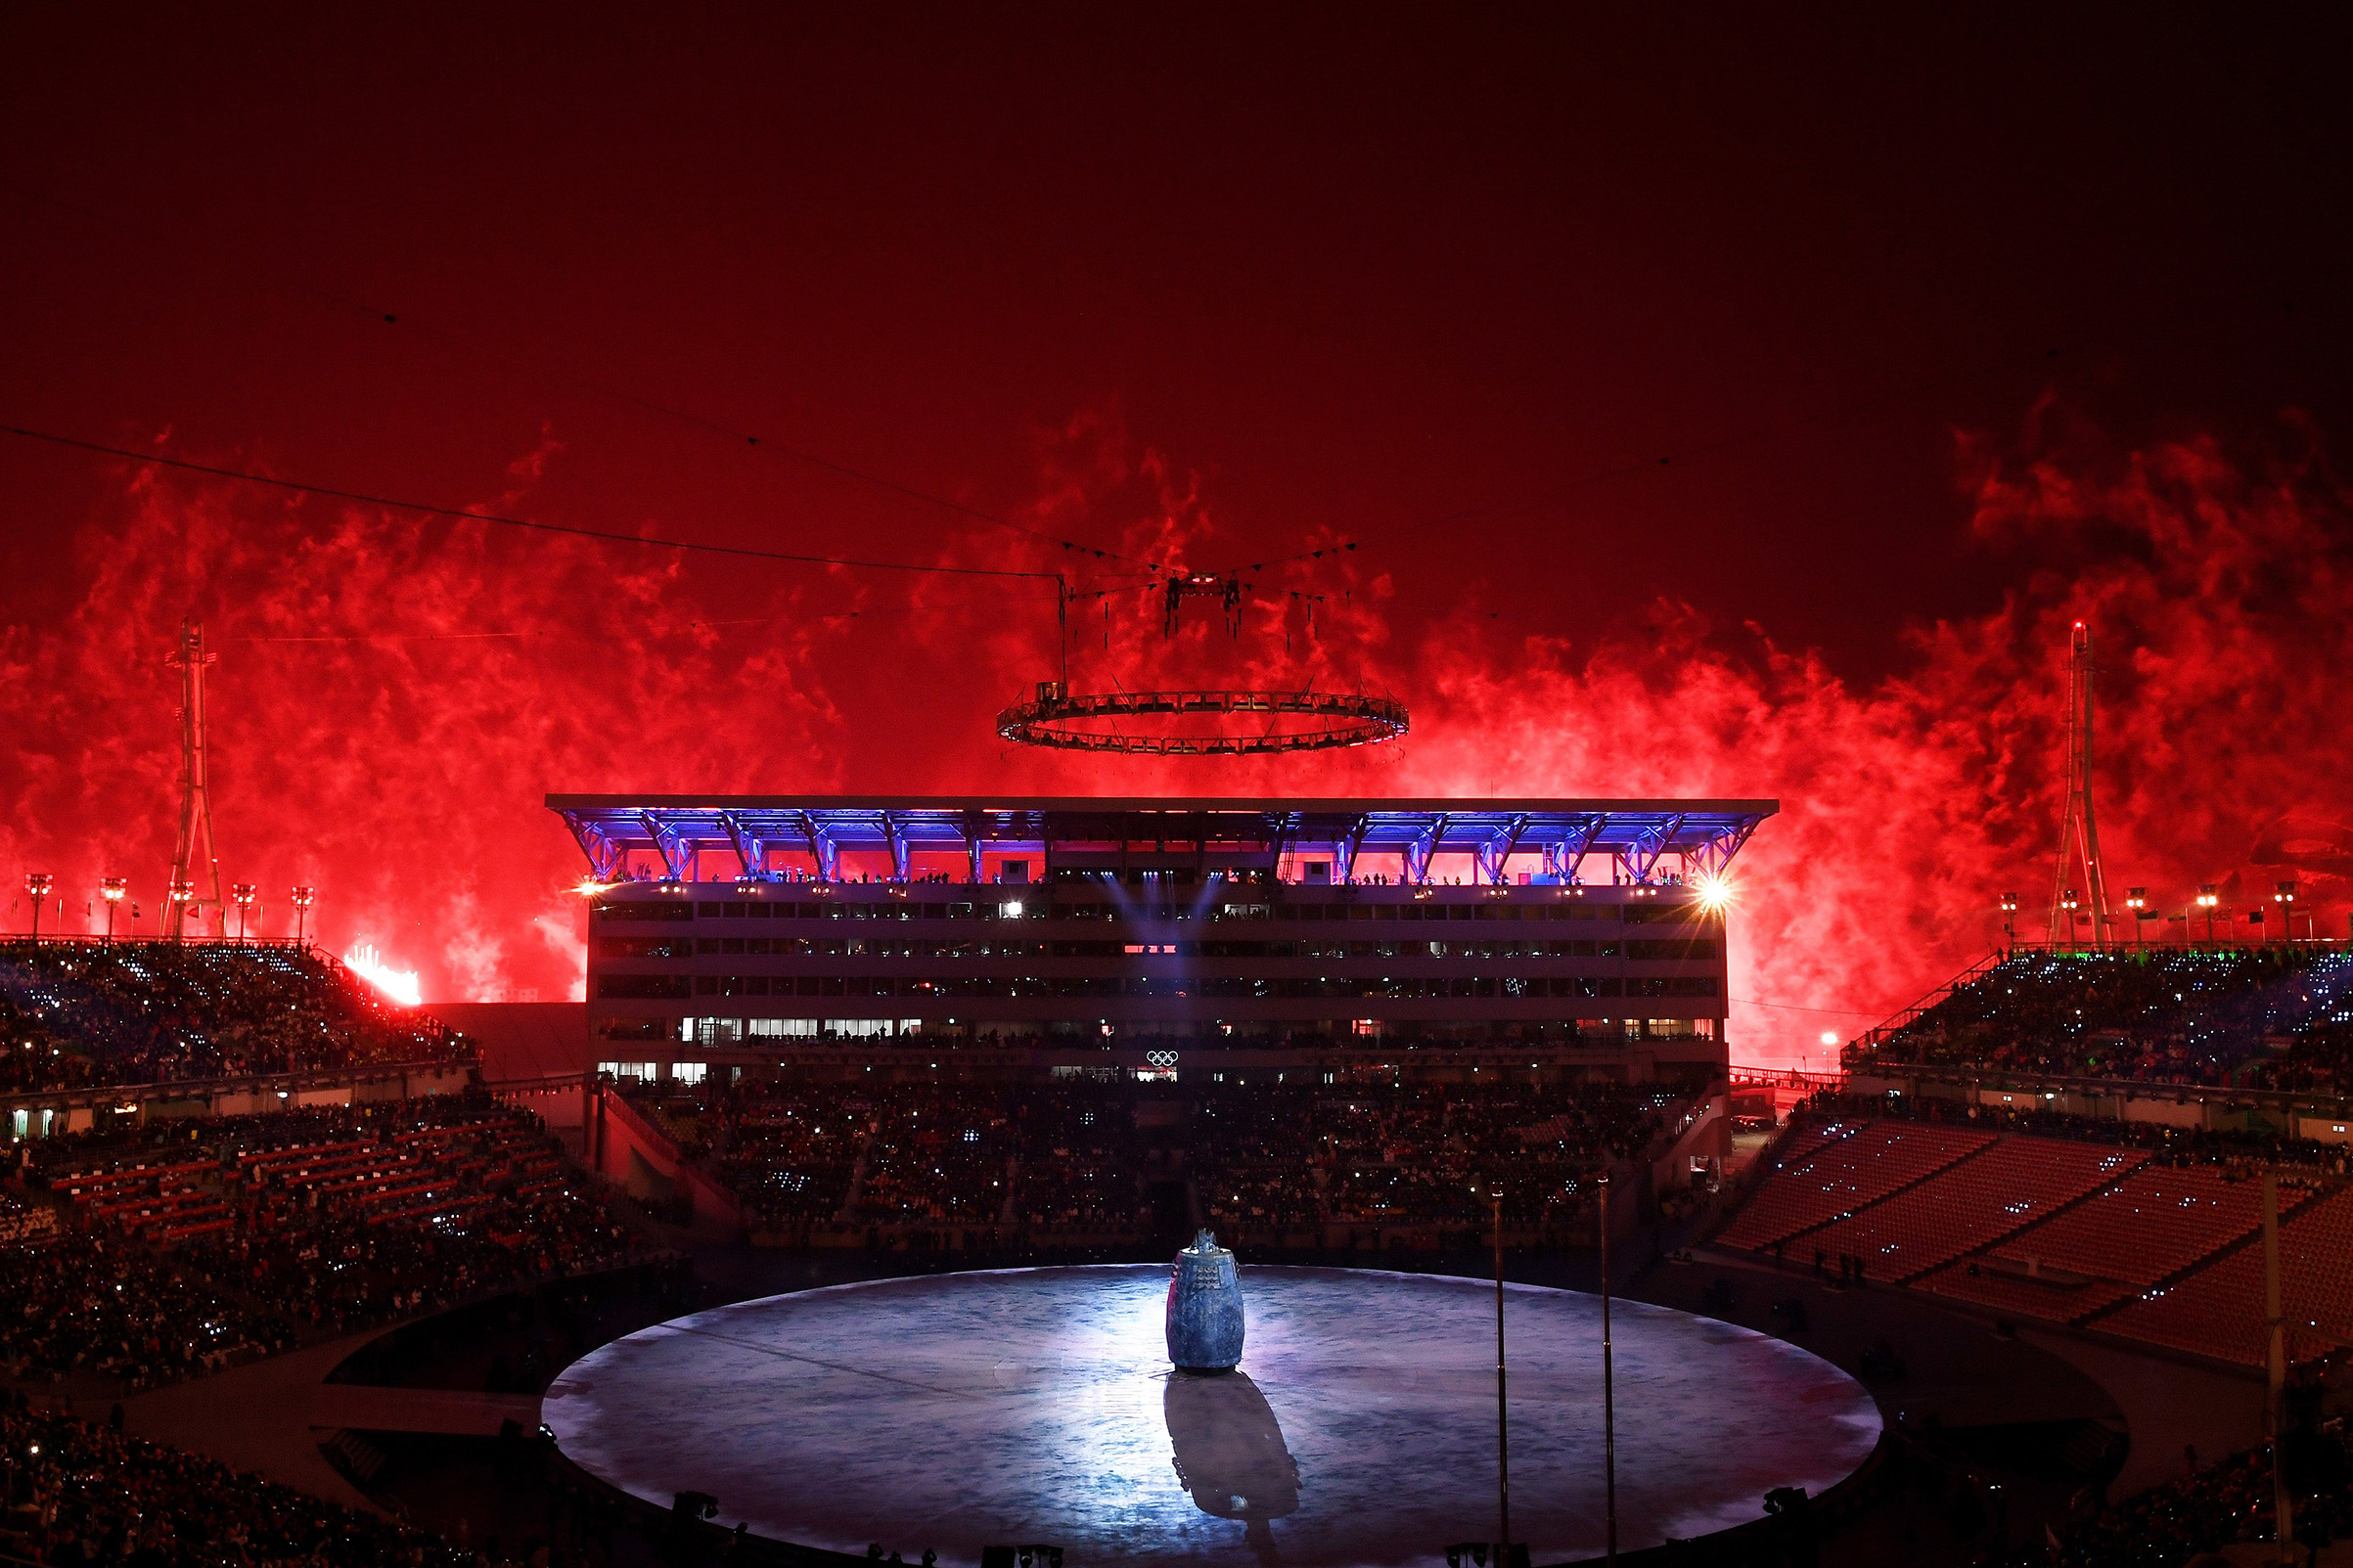 Fireworks erupt during the Opening Ceremony of the PyeongChang 2018 Winter Olympic Games.